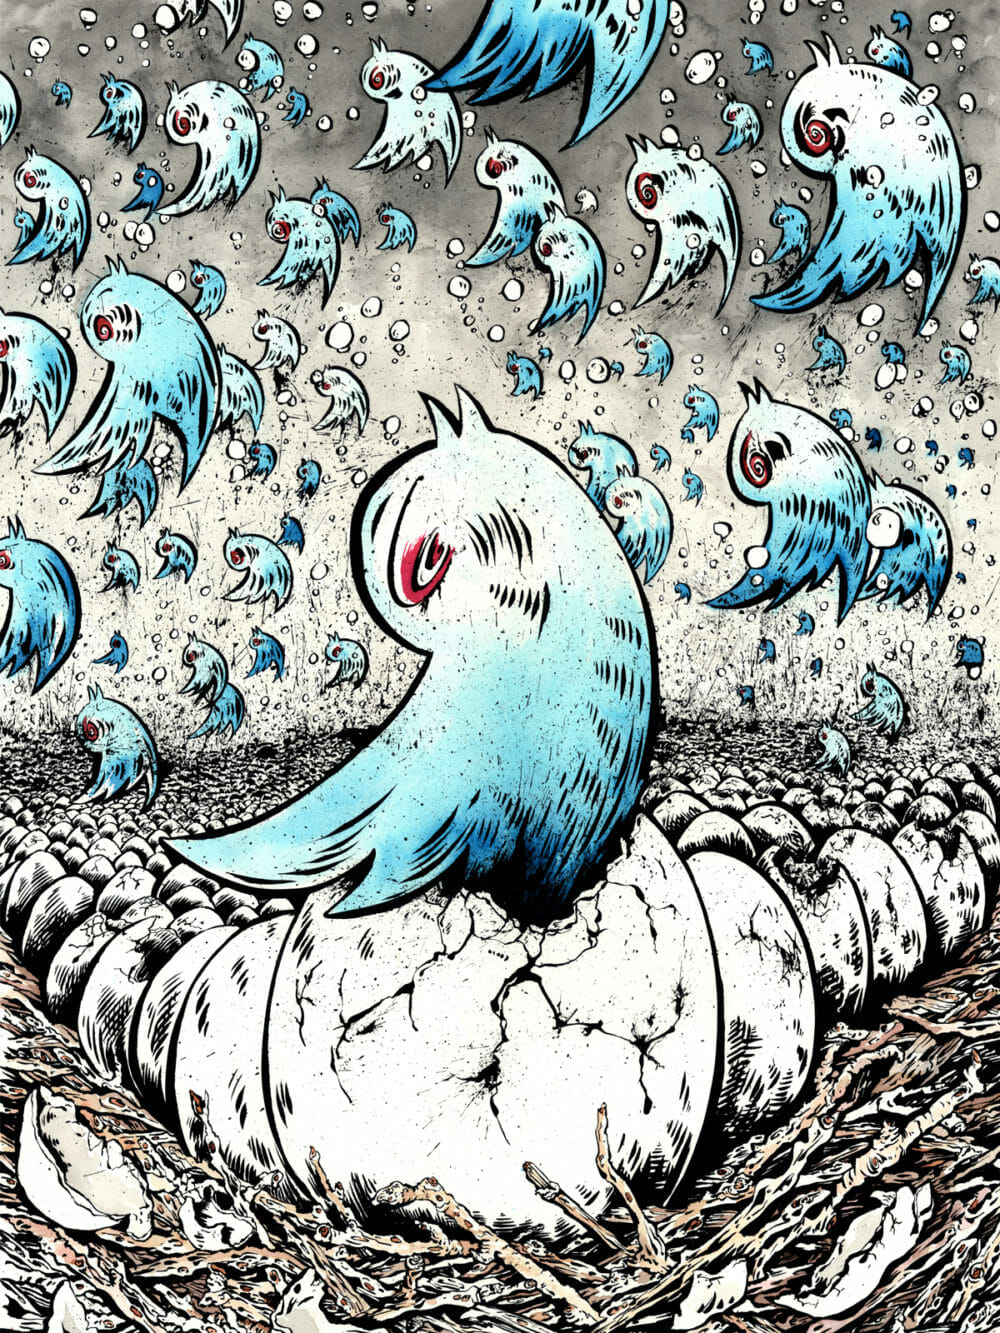 Twitter birds fall from the sky